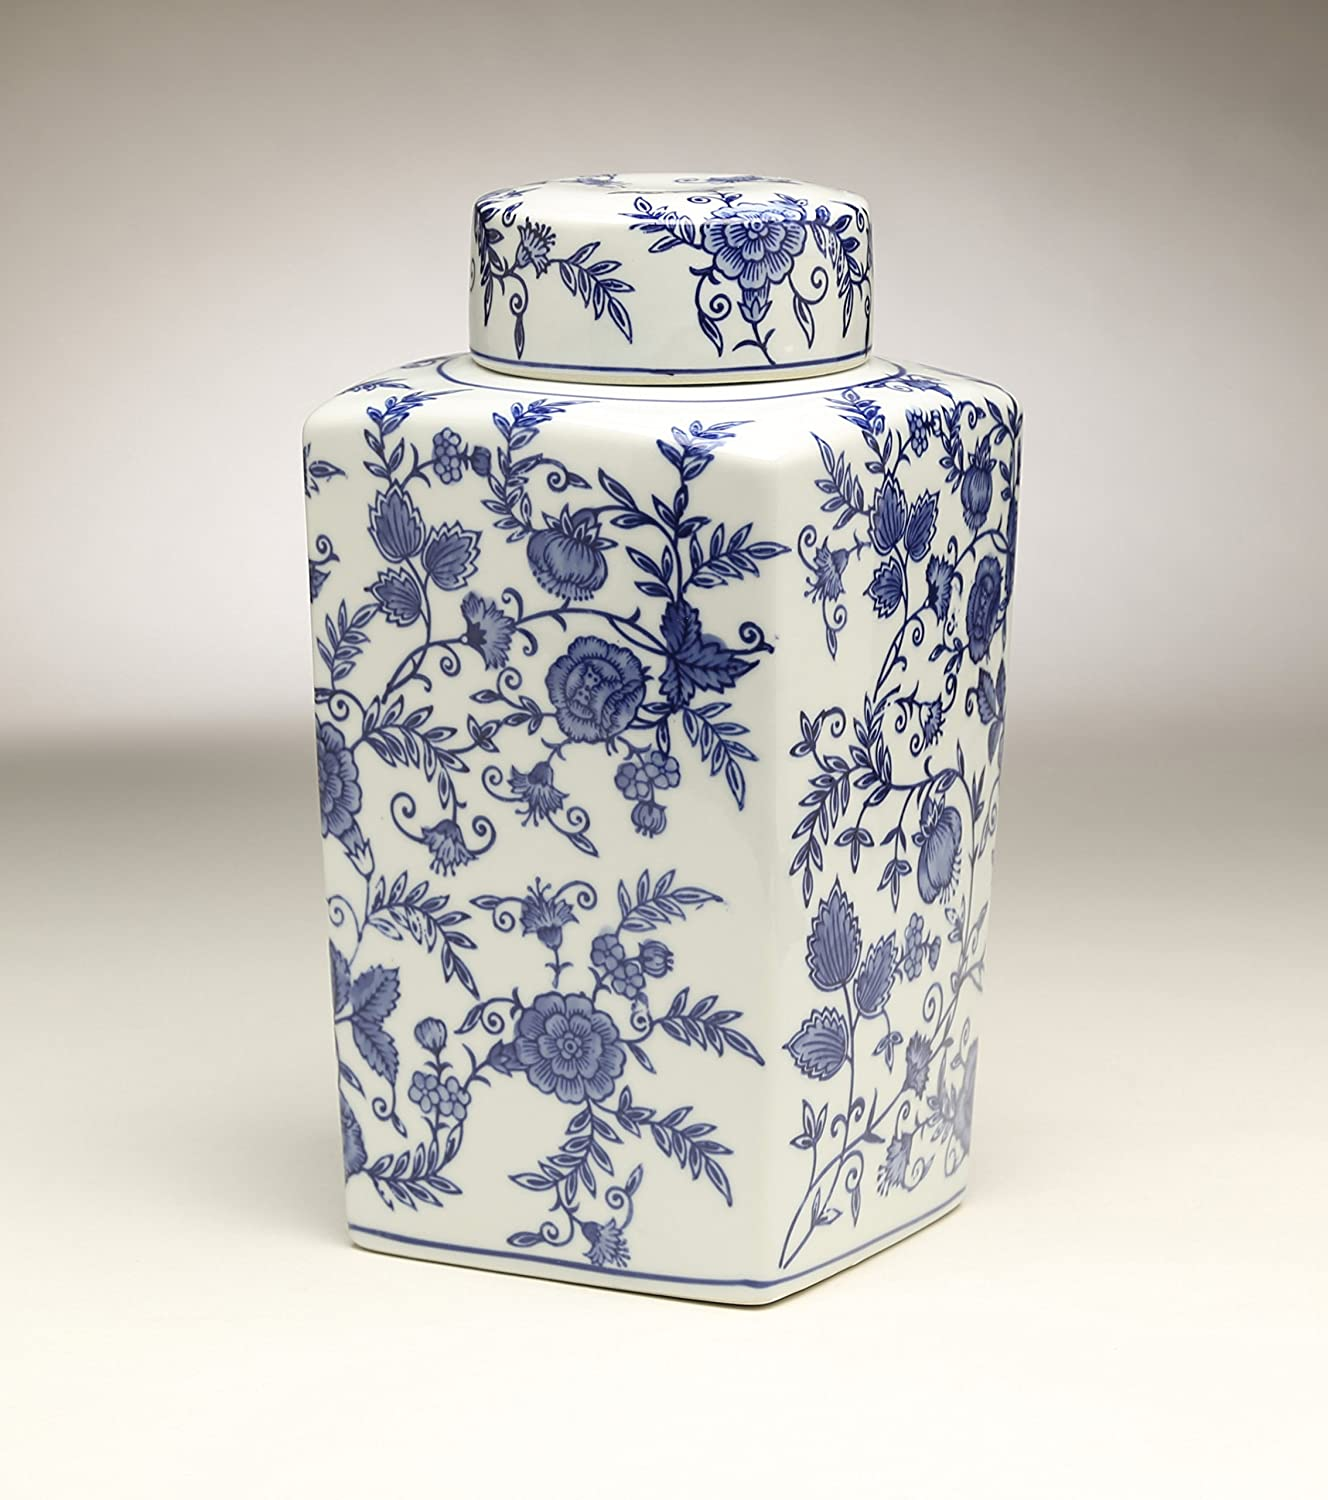 AA Importing 59950 12 Inch Indianapolis Mall Jar White Mail order cheap Square Blue